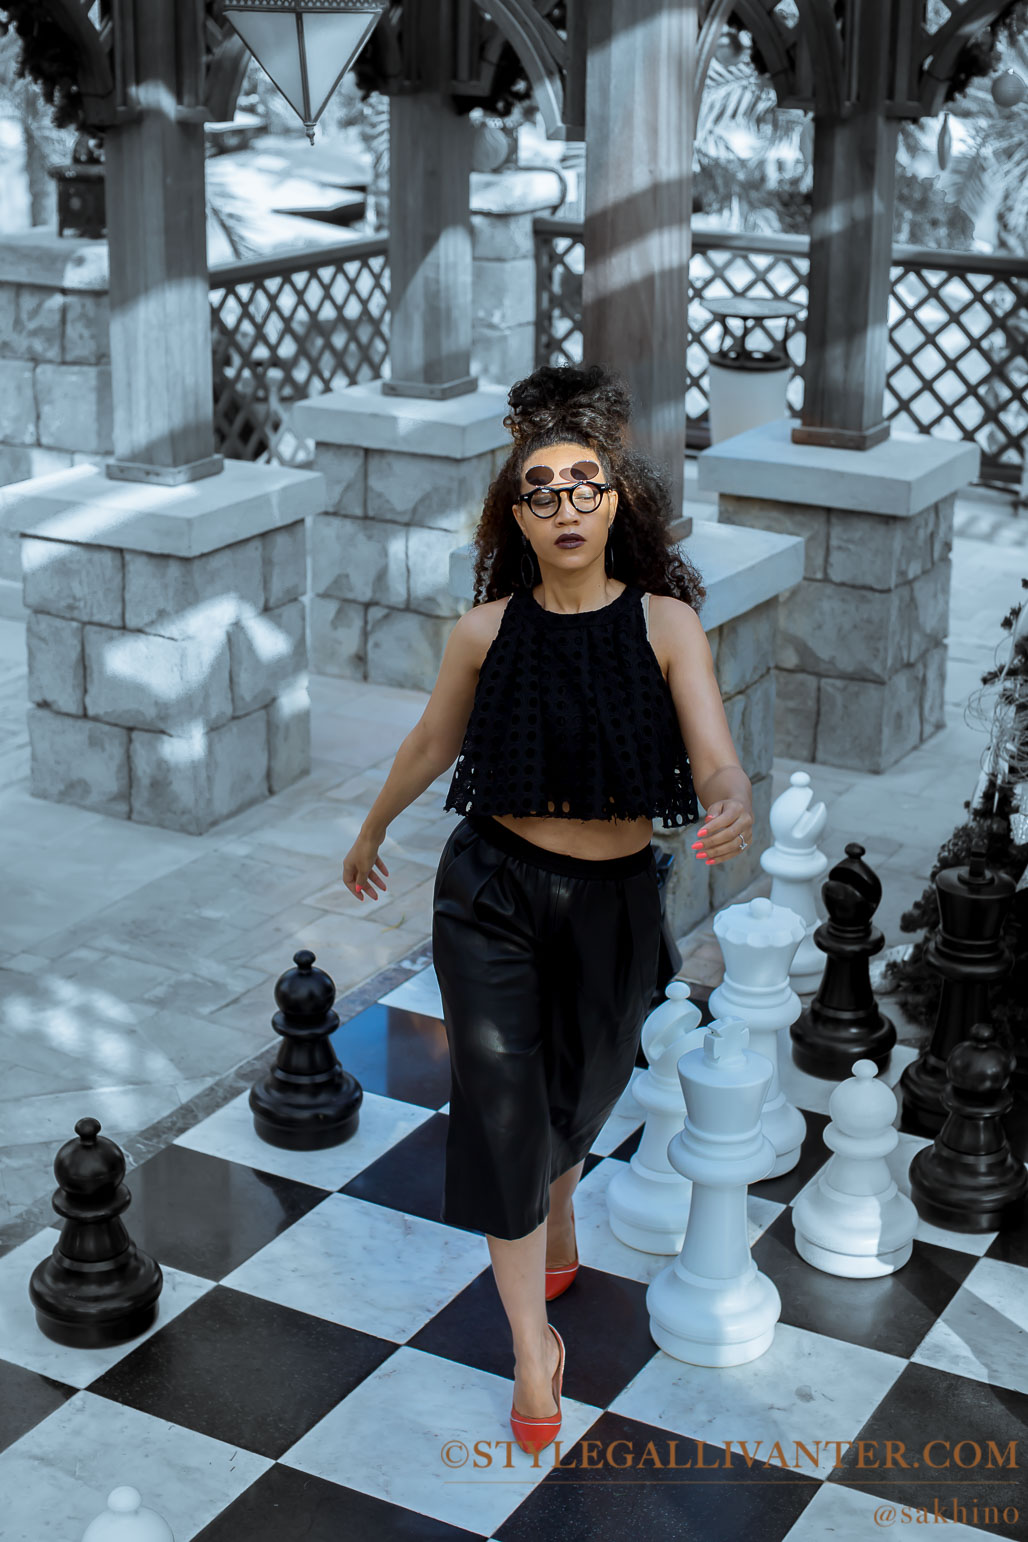 Kings and Queens, black and white outfits, leather culottes, flip sunglasses, top melbourne fashion bloggers 2017, @sakhino - miranda-22